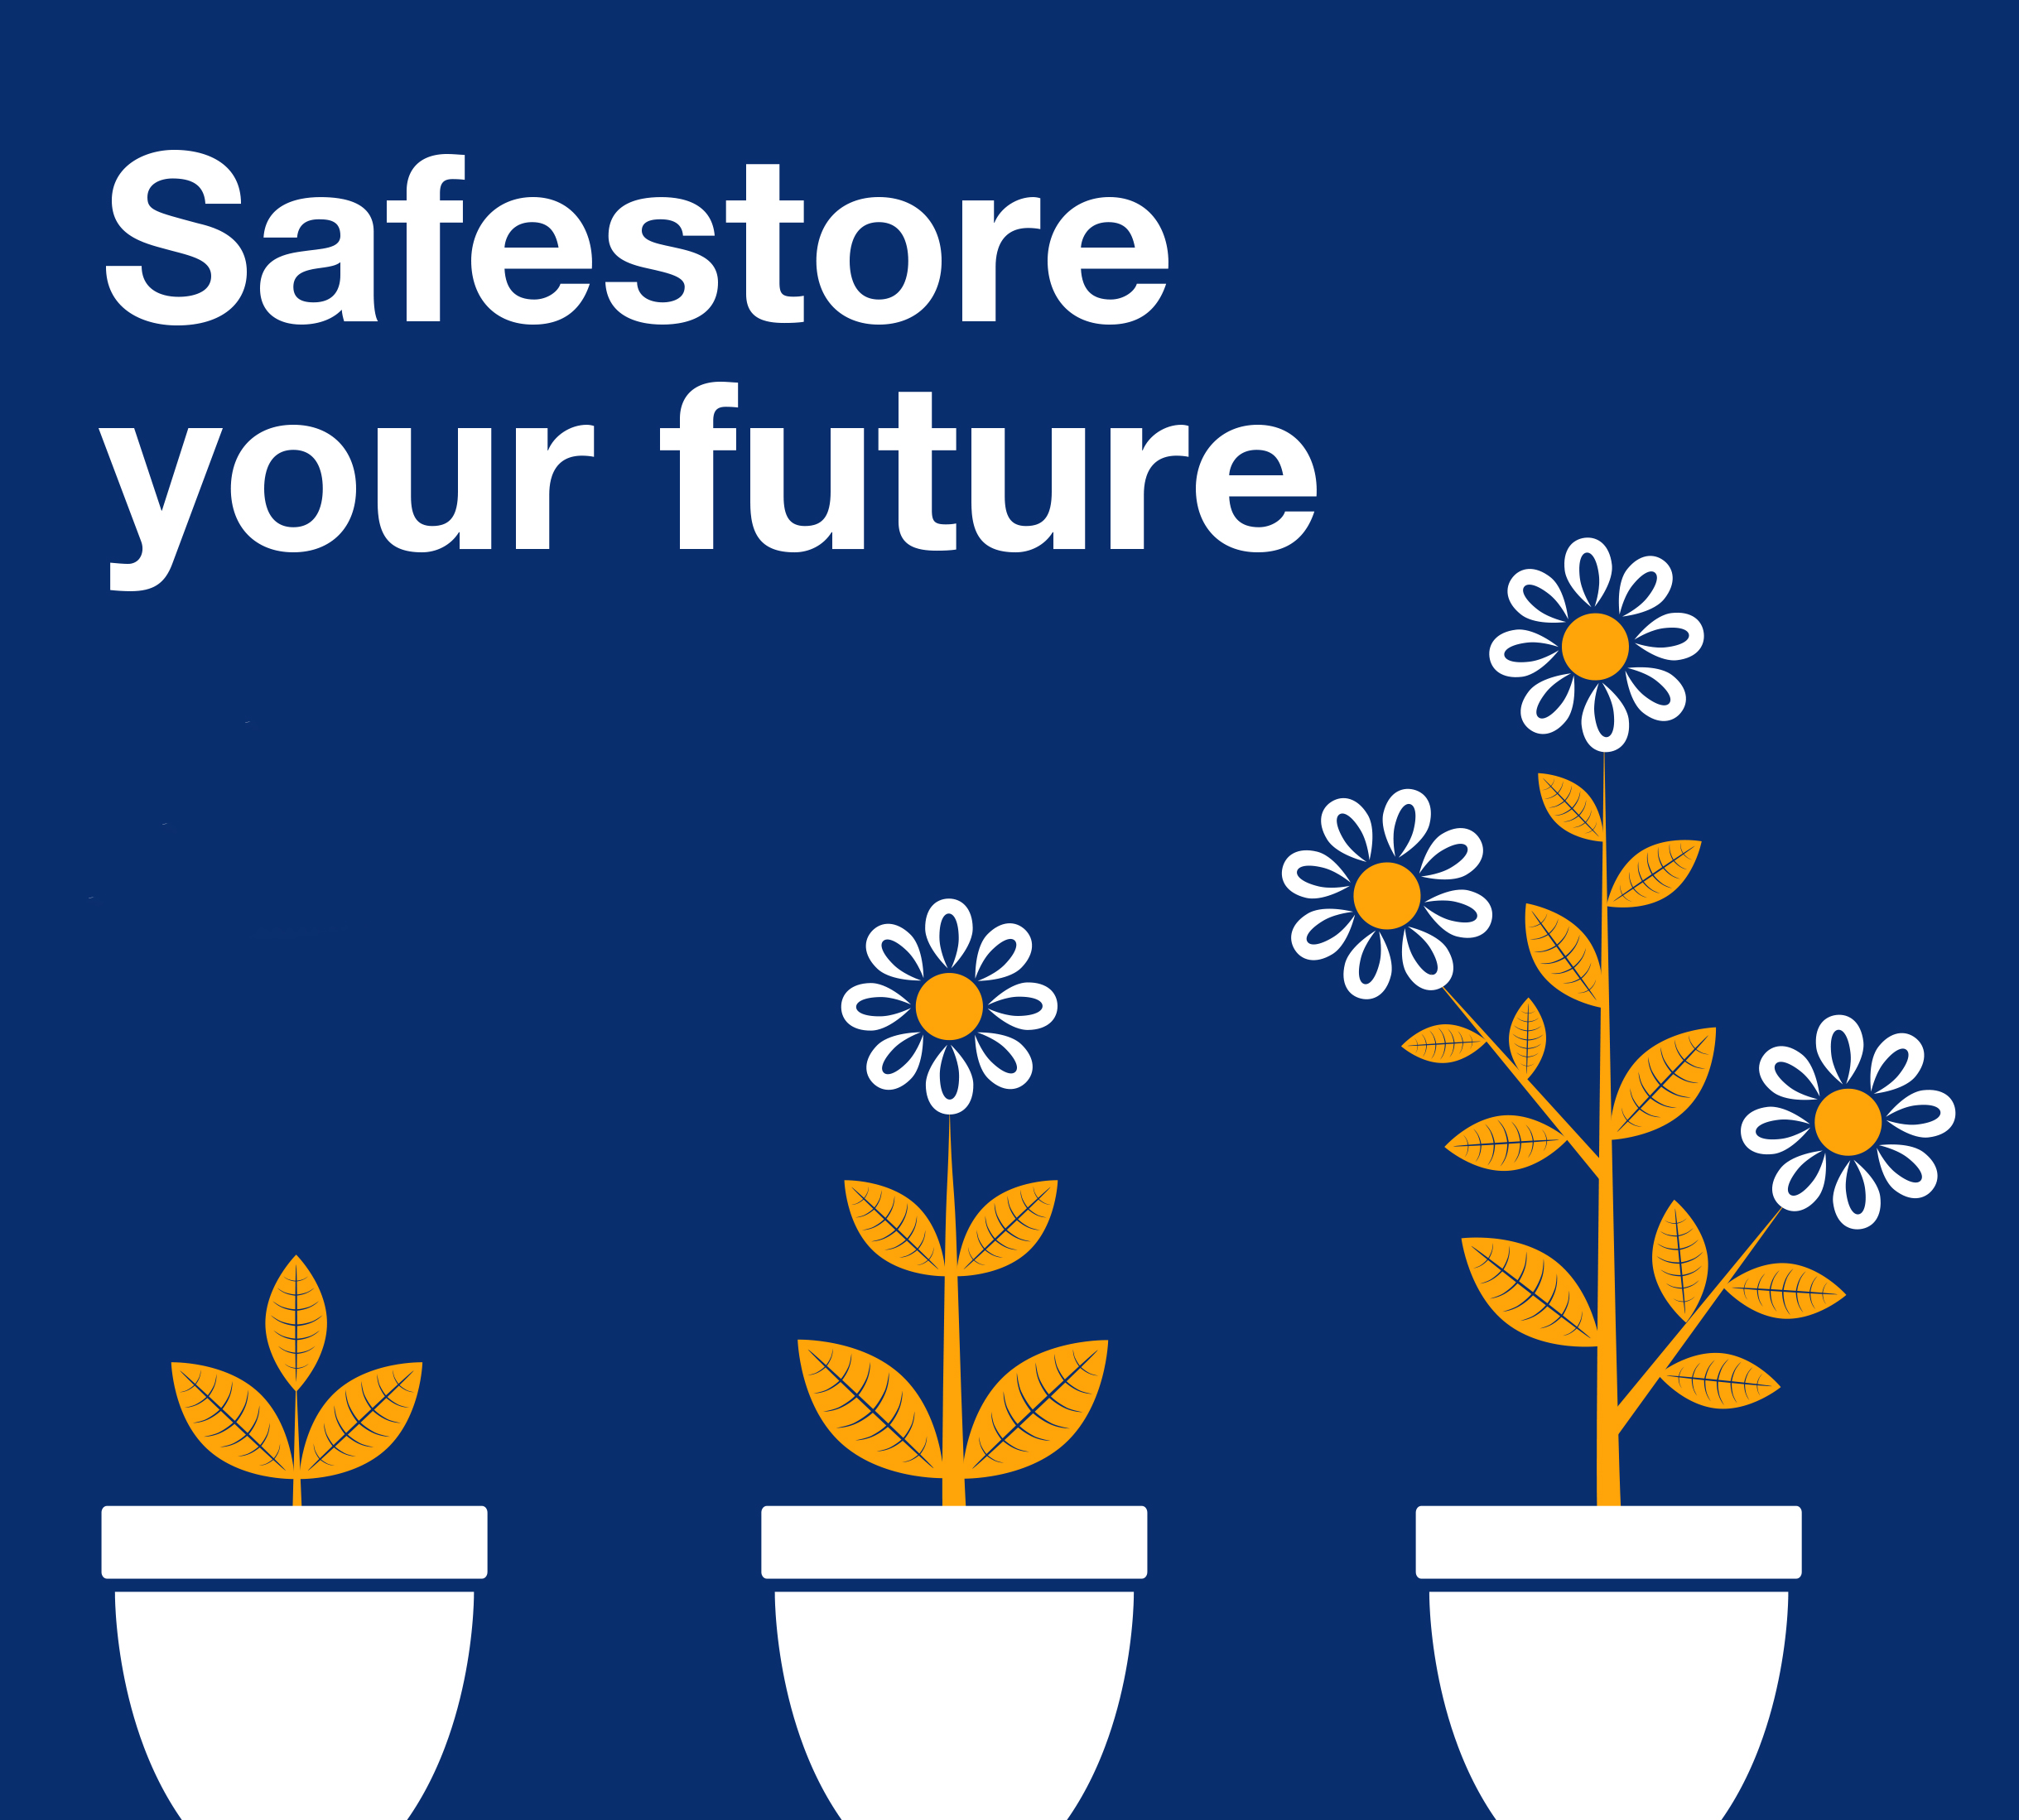 Safestore-your-future.jpg